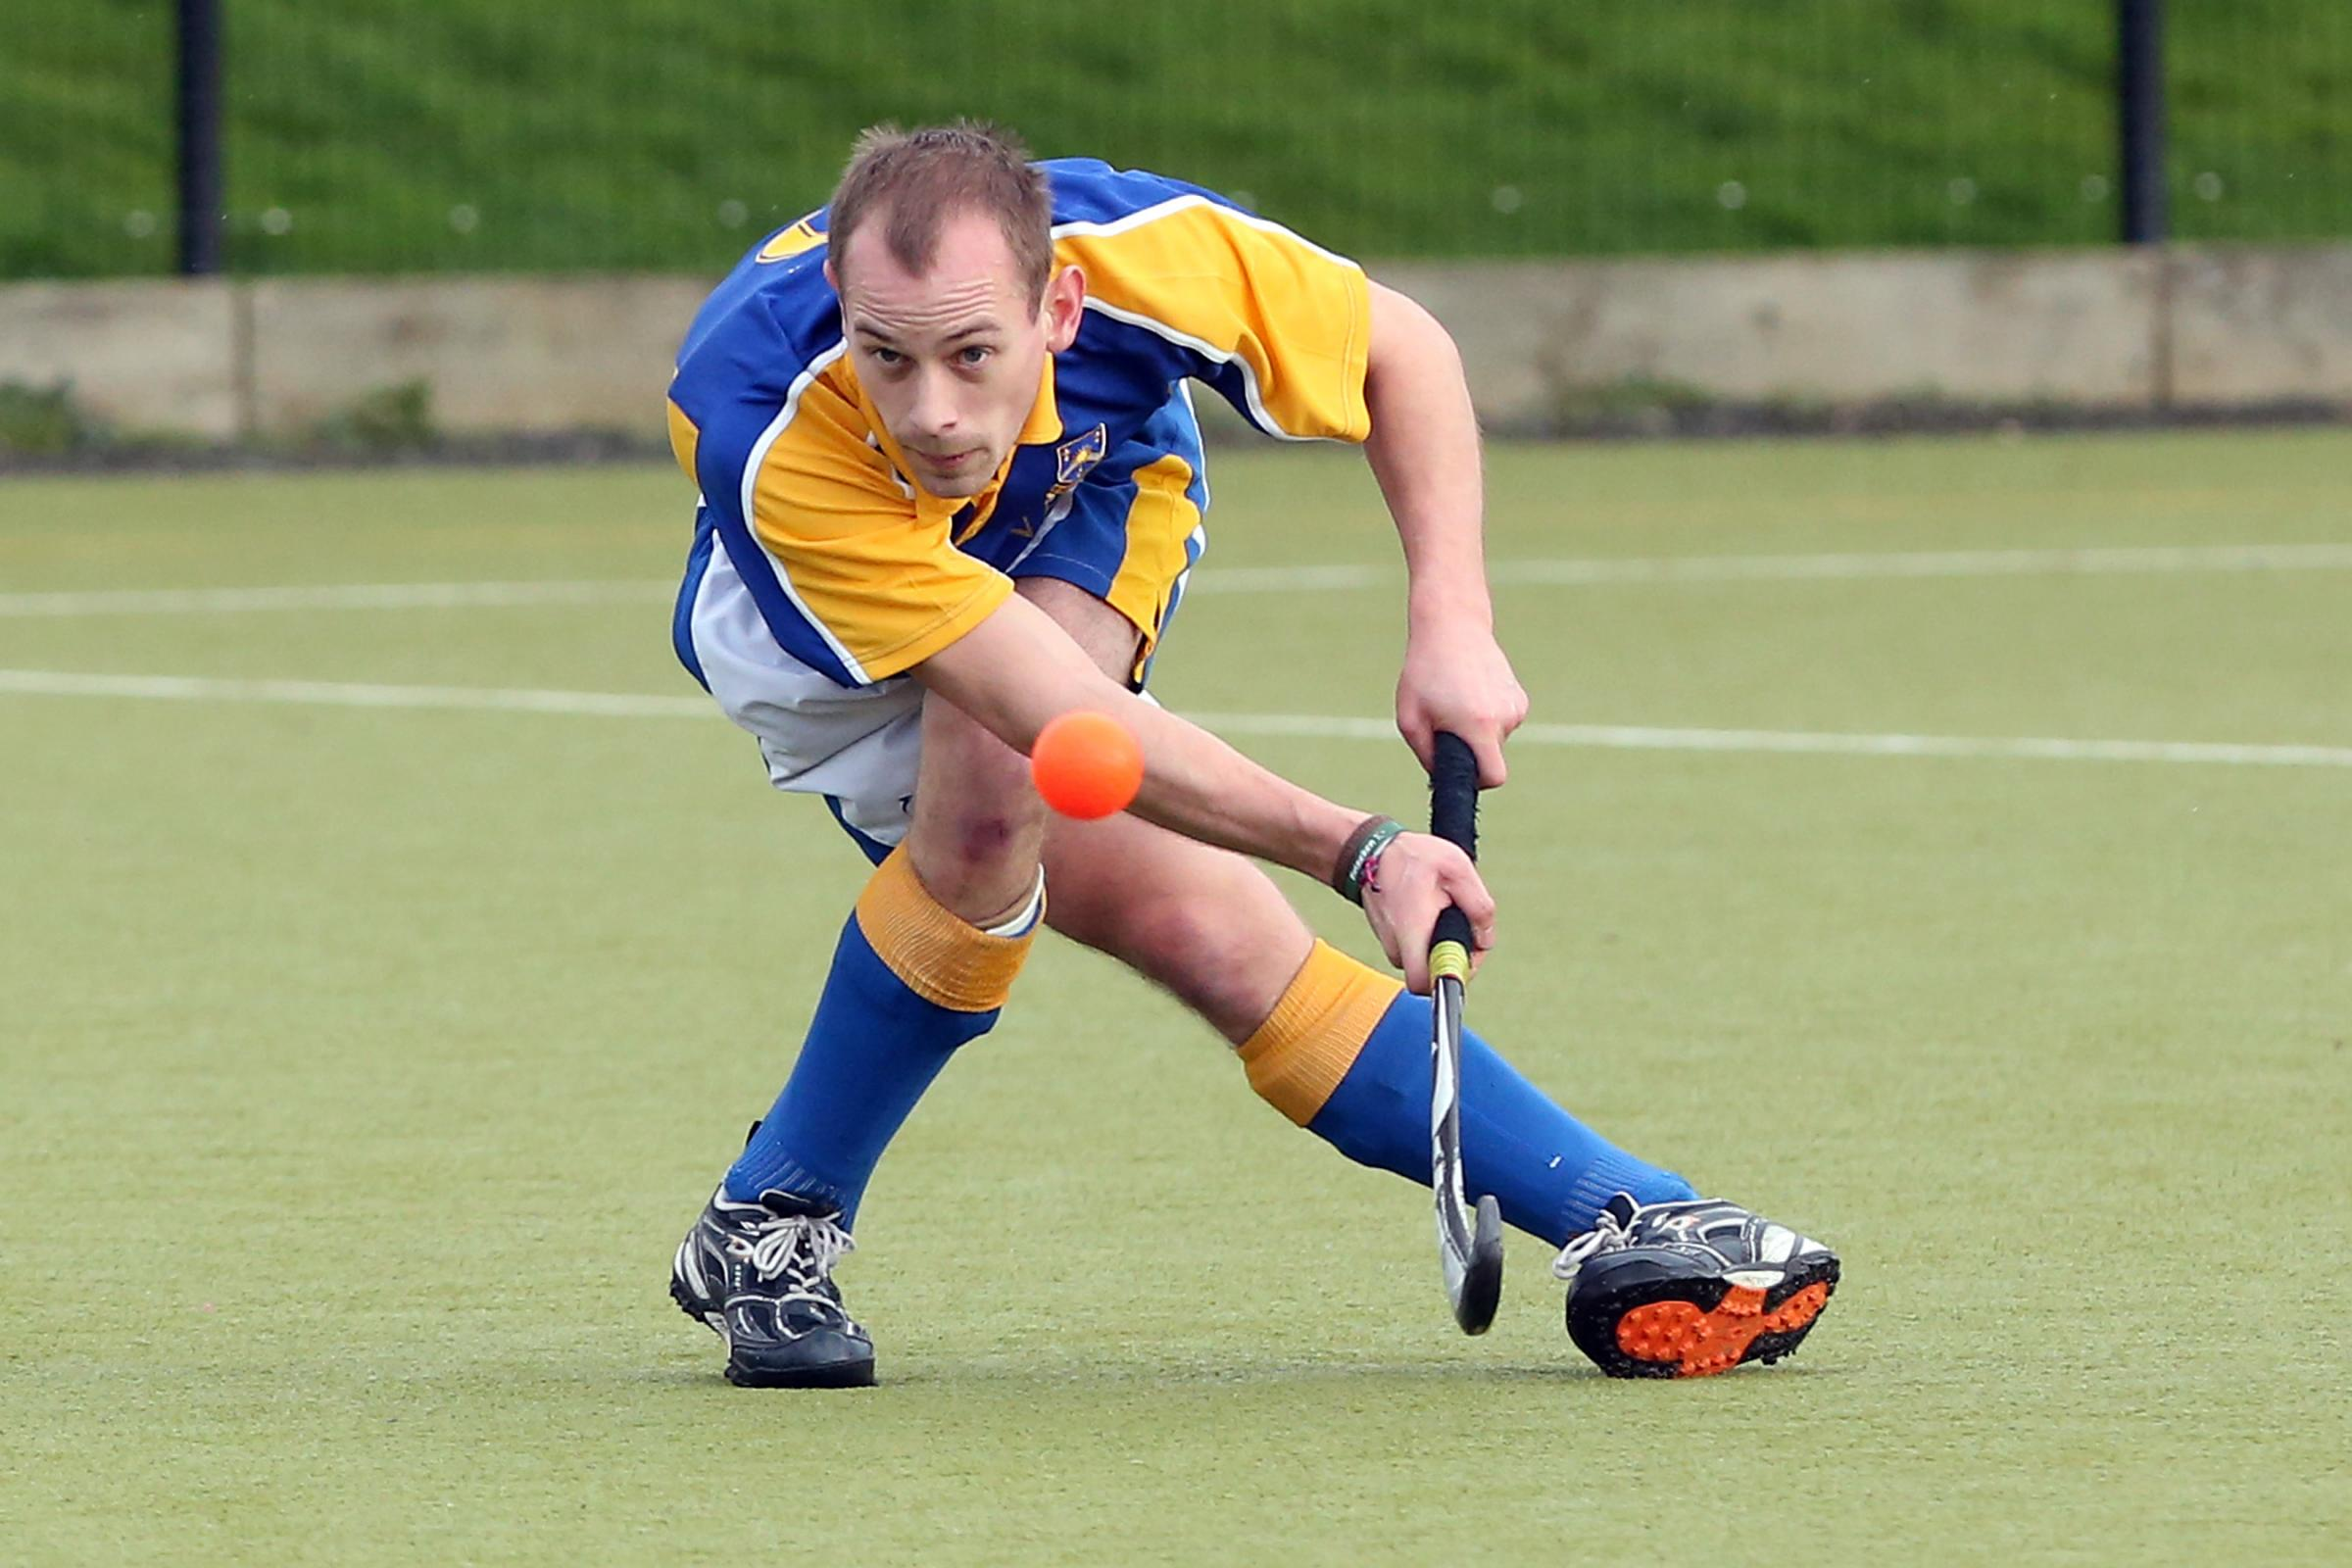 Paul Harrold in action for Old Halesonians Hockey Club